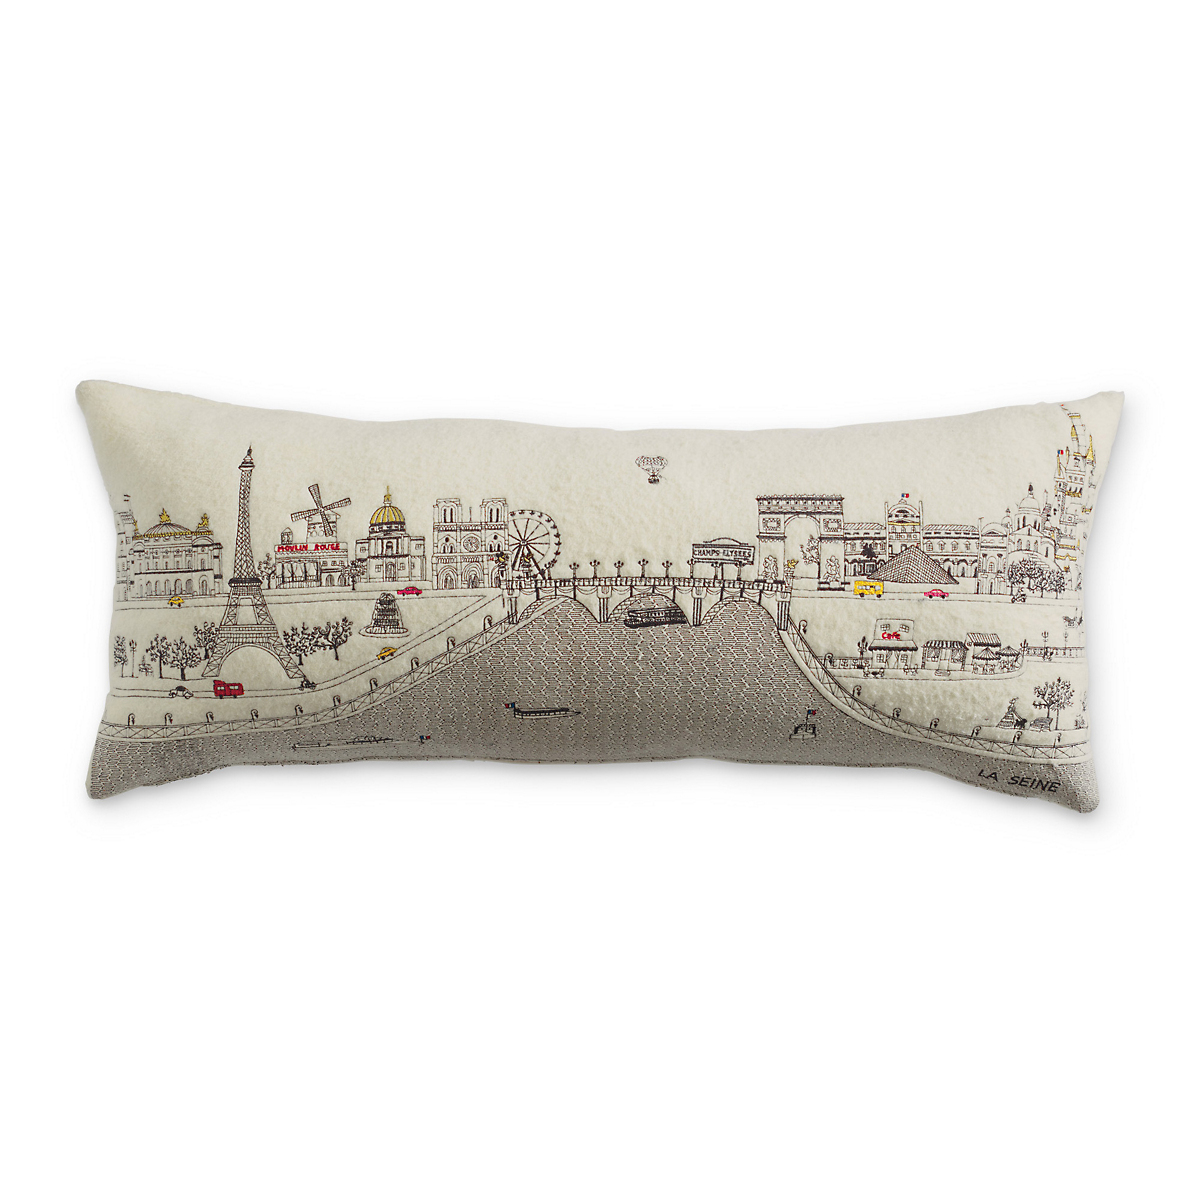 Novelty Pillows Shop our vast selection of novelty pillows